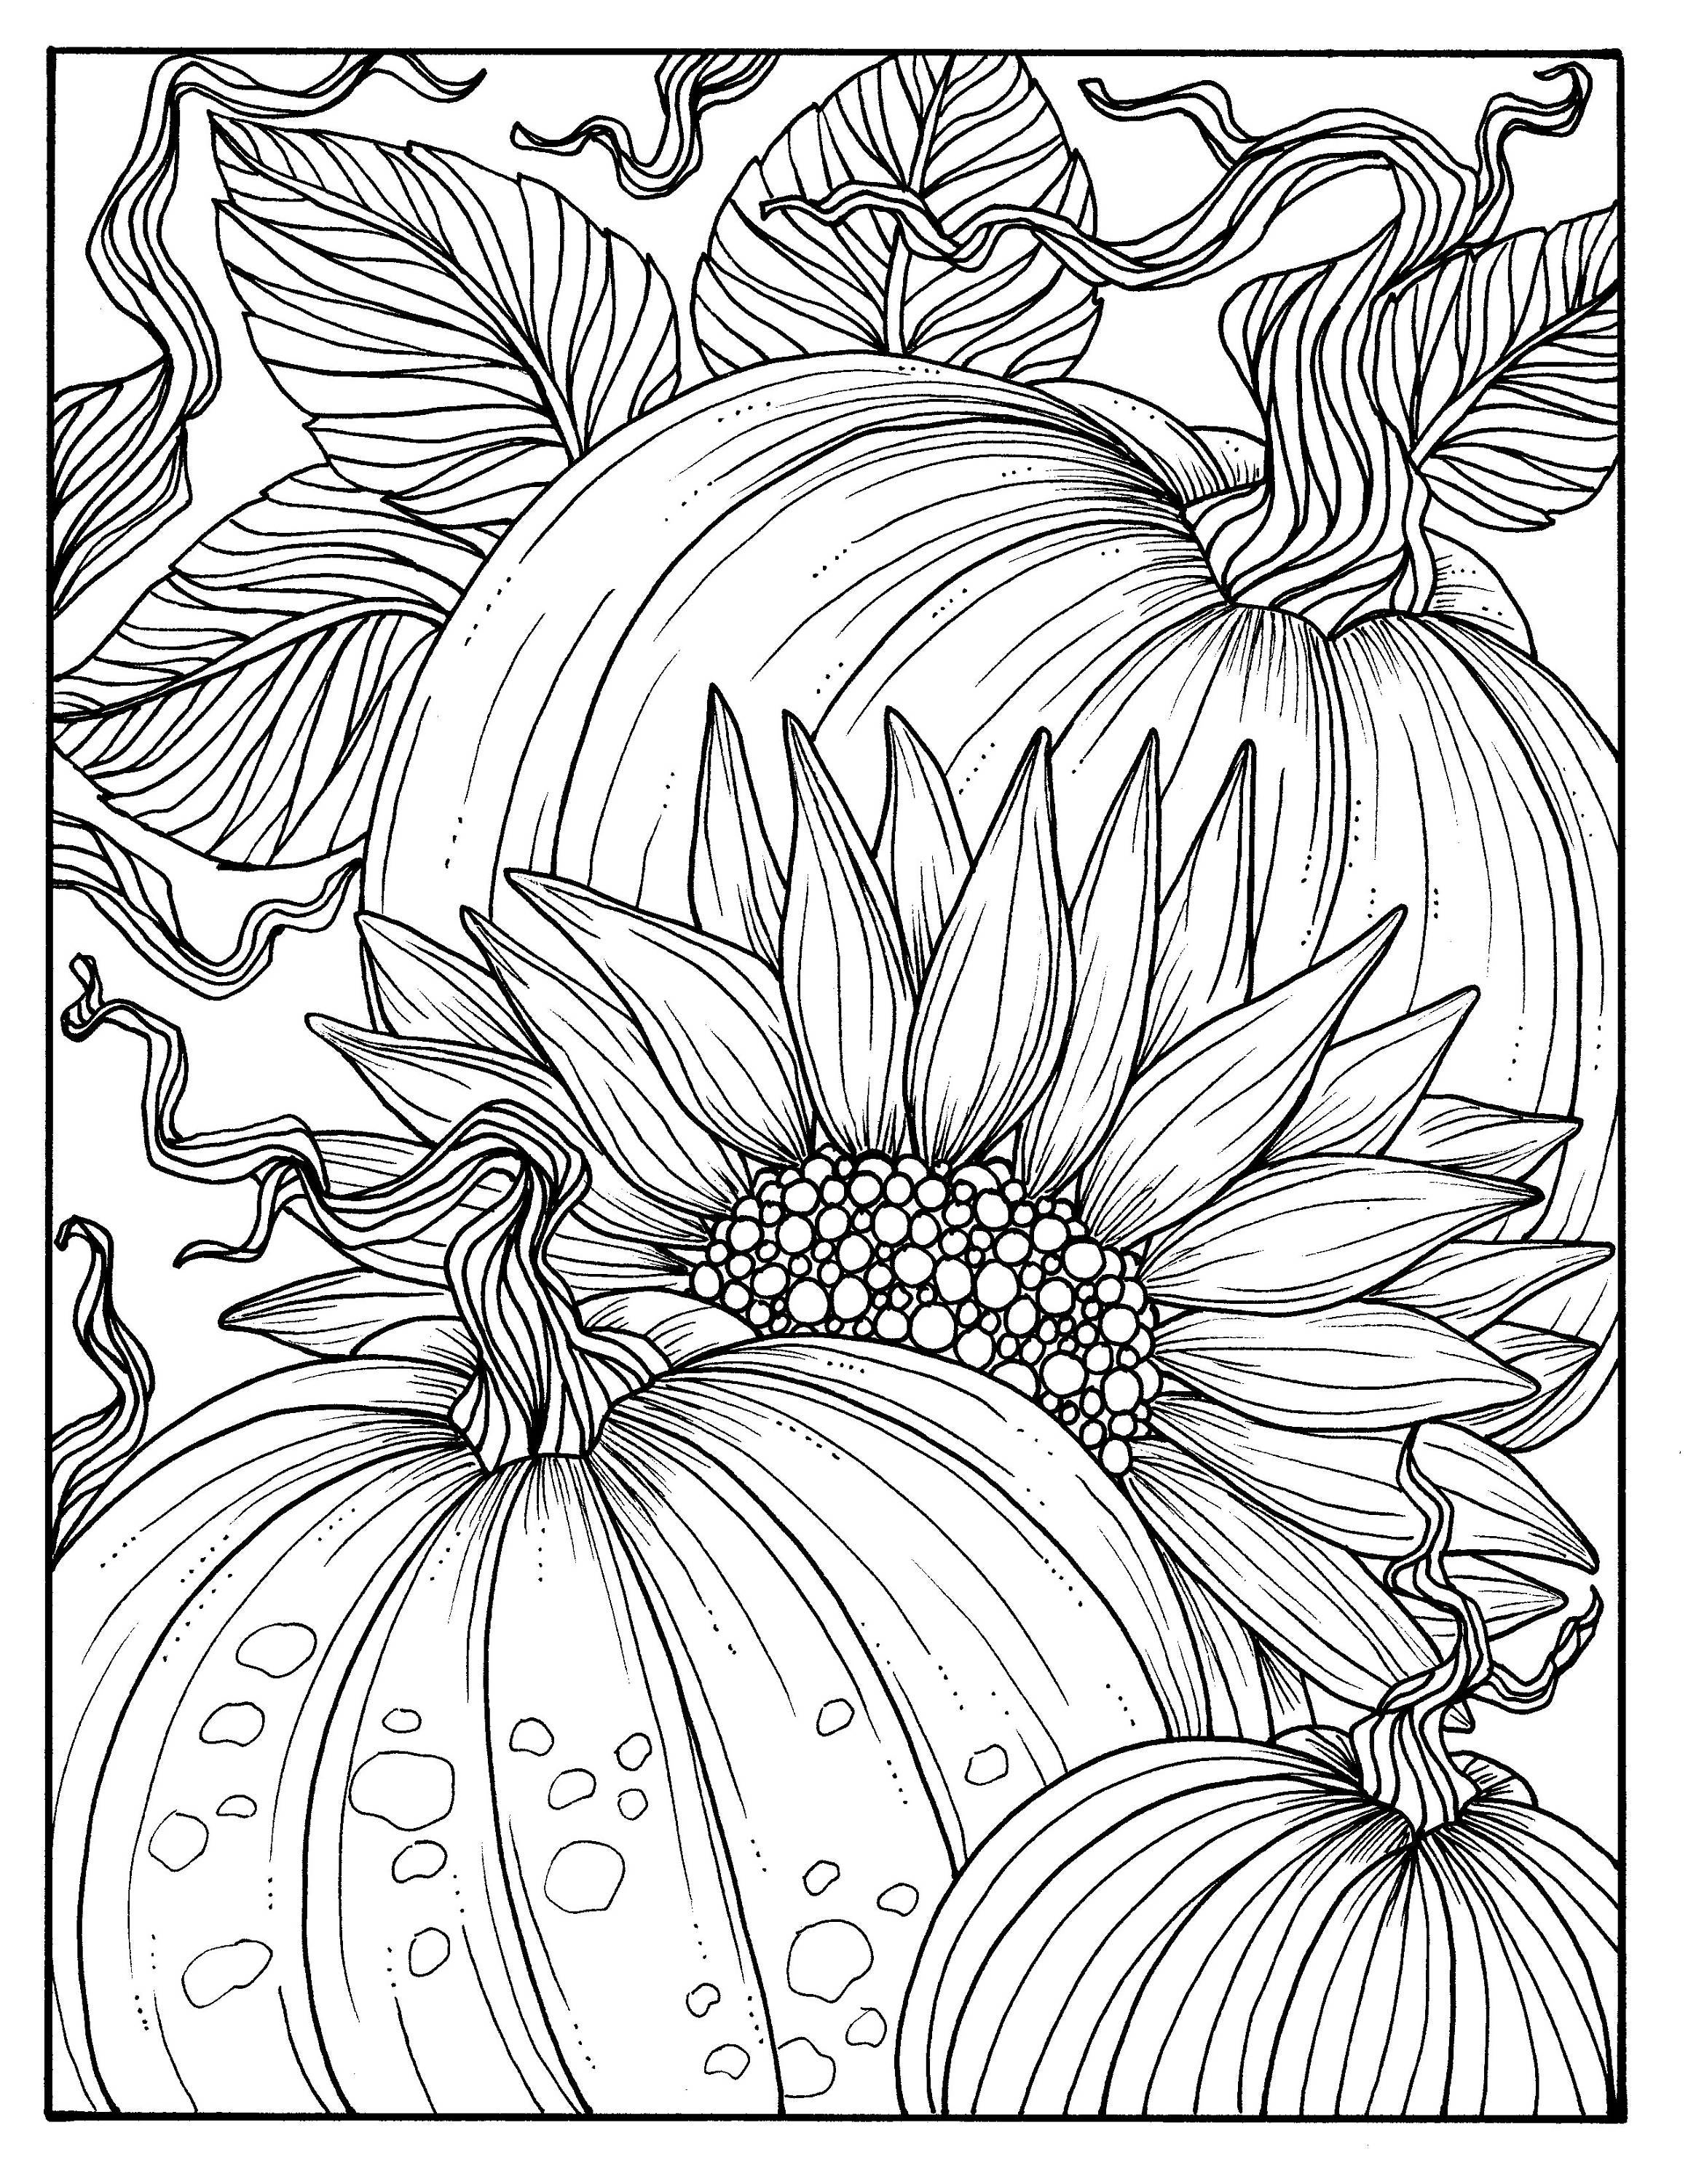 fall themed coloring pages 5 pages fabulous fall digital downloads to color punpkins themed pages coloring fall